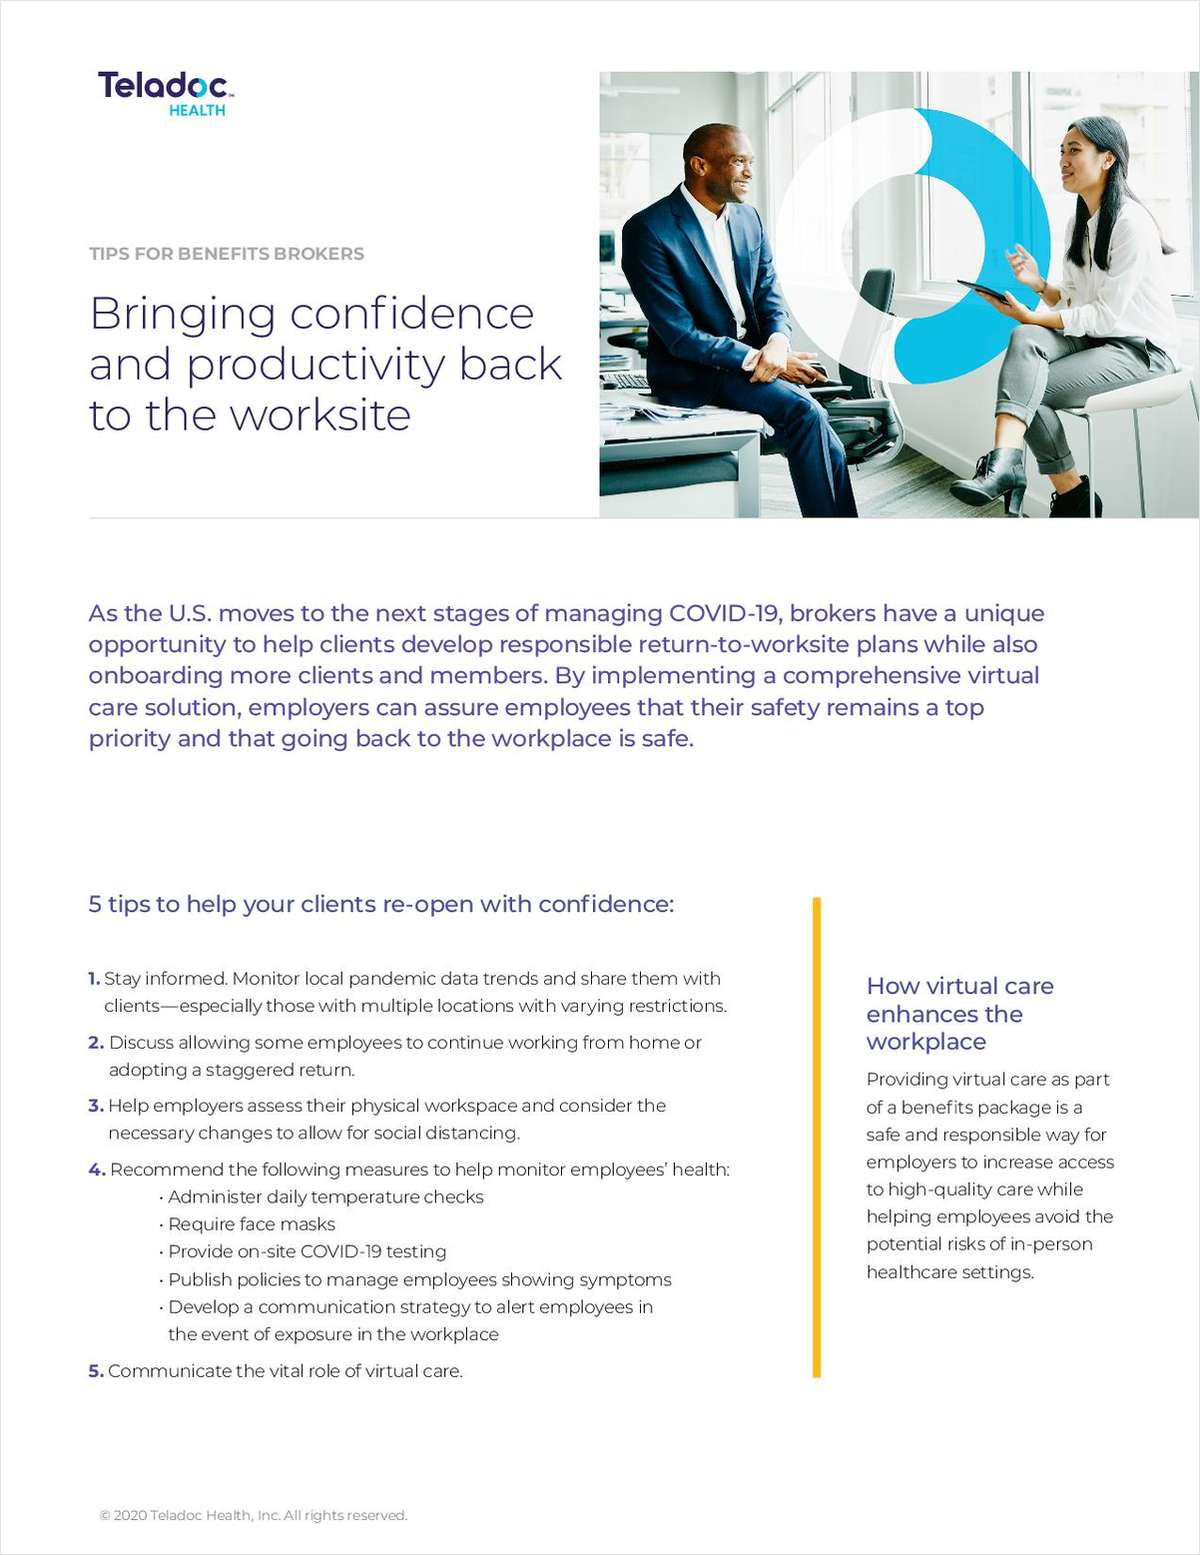 Broker Tips: Bring Confidence and Productivity Back to the Worksite